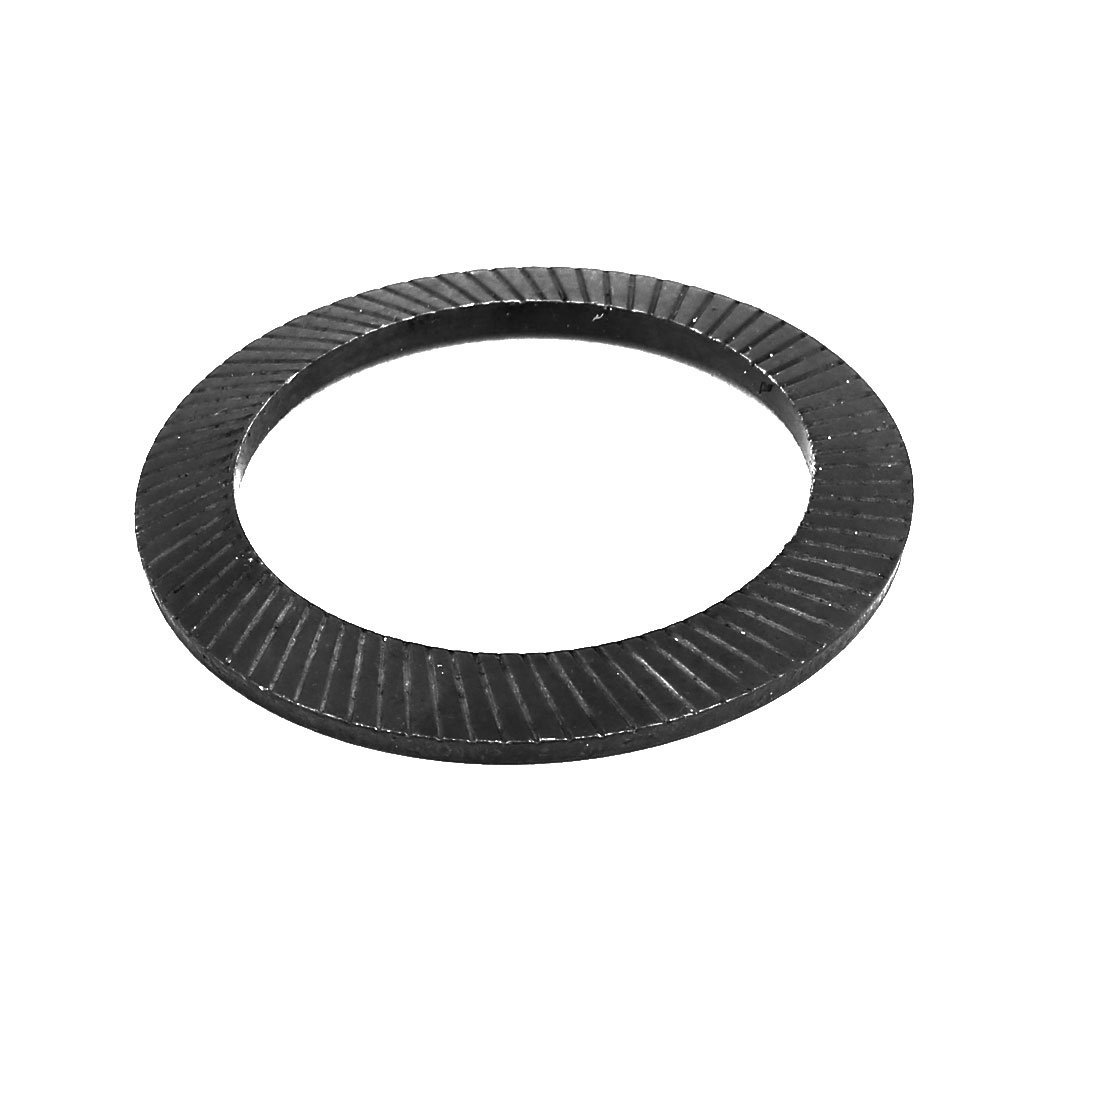 uxcell 36mm Inner Dia 3mm Thickness Carbon Steel Wedge Locking Washer